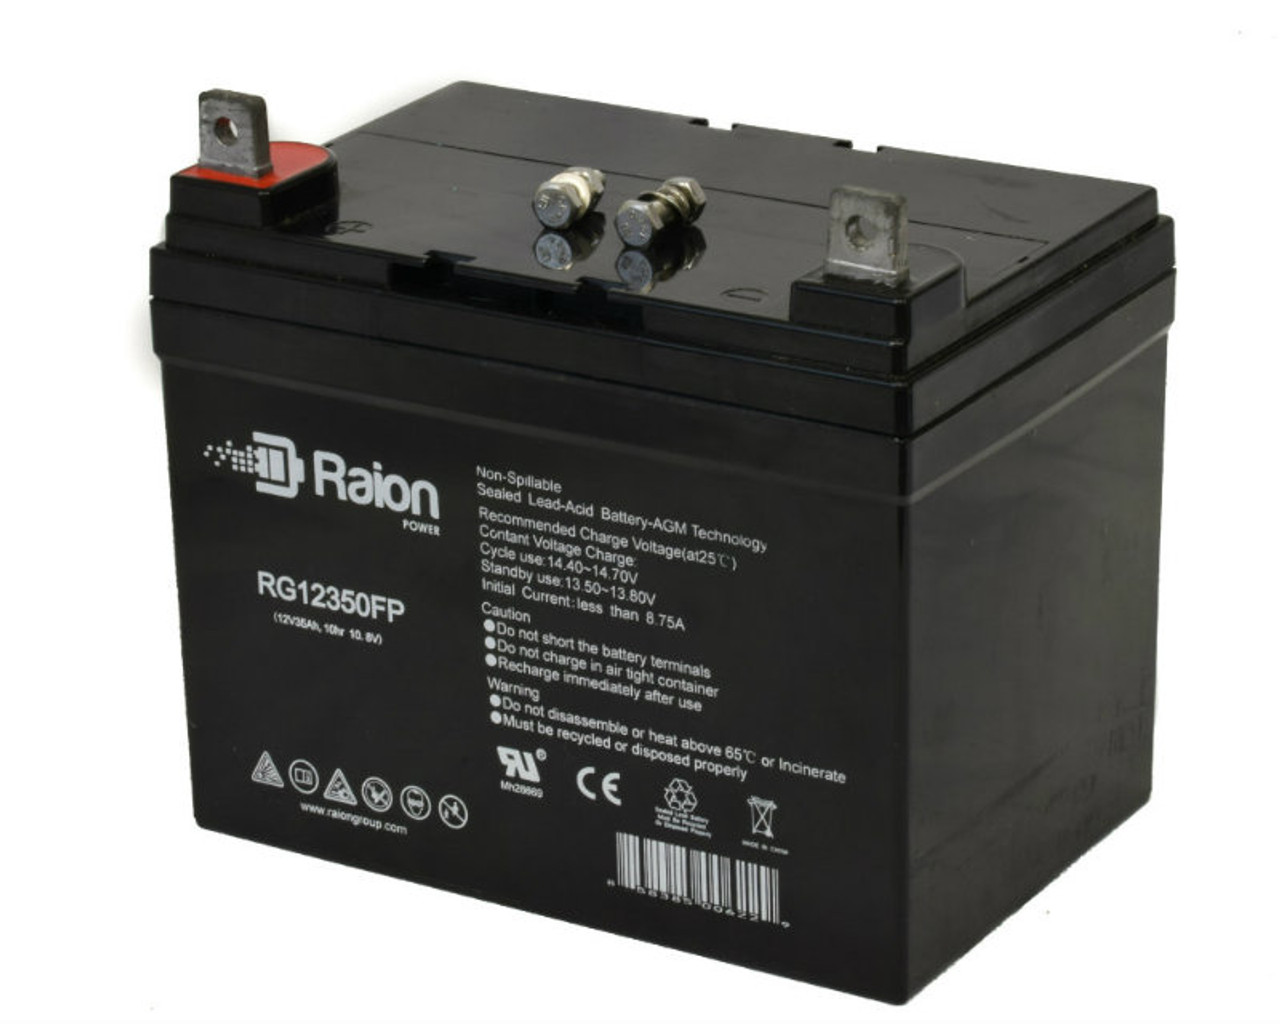 RG12350FP Sealed Lead Acid Battery Pack For Pace Saver Eclipse Mobility Scooter